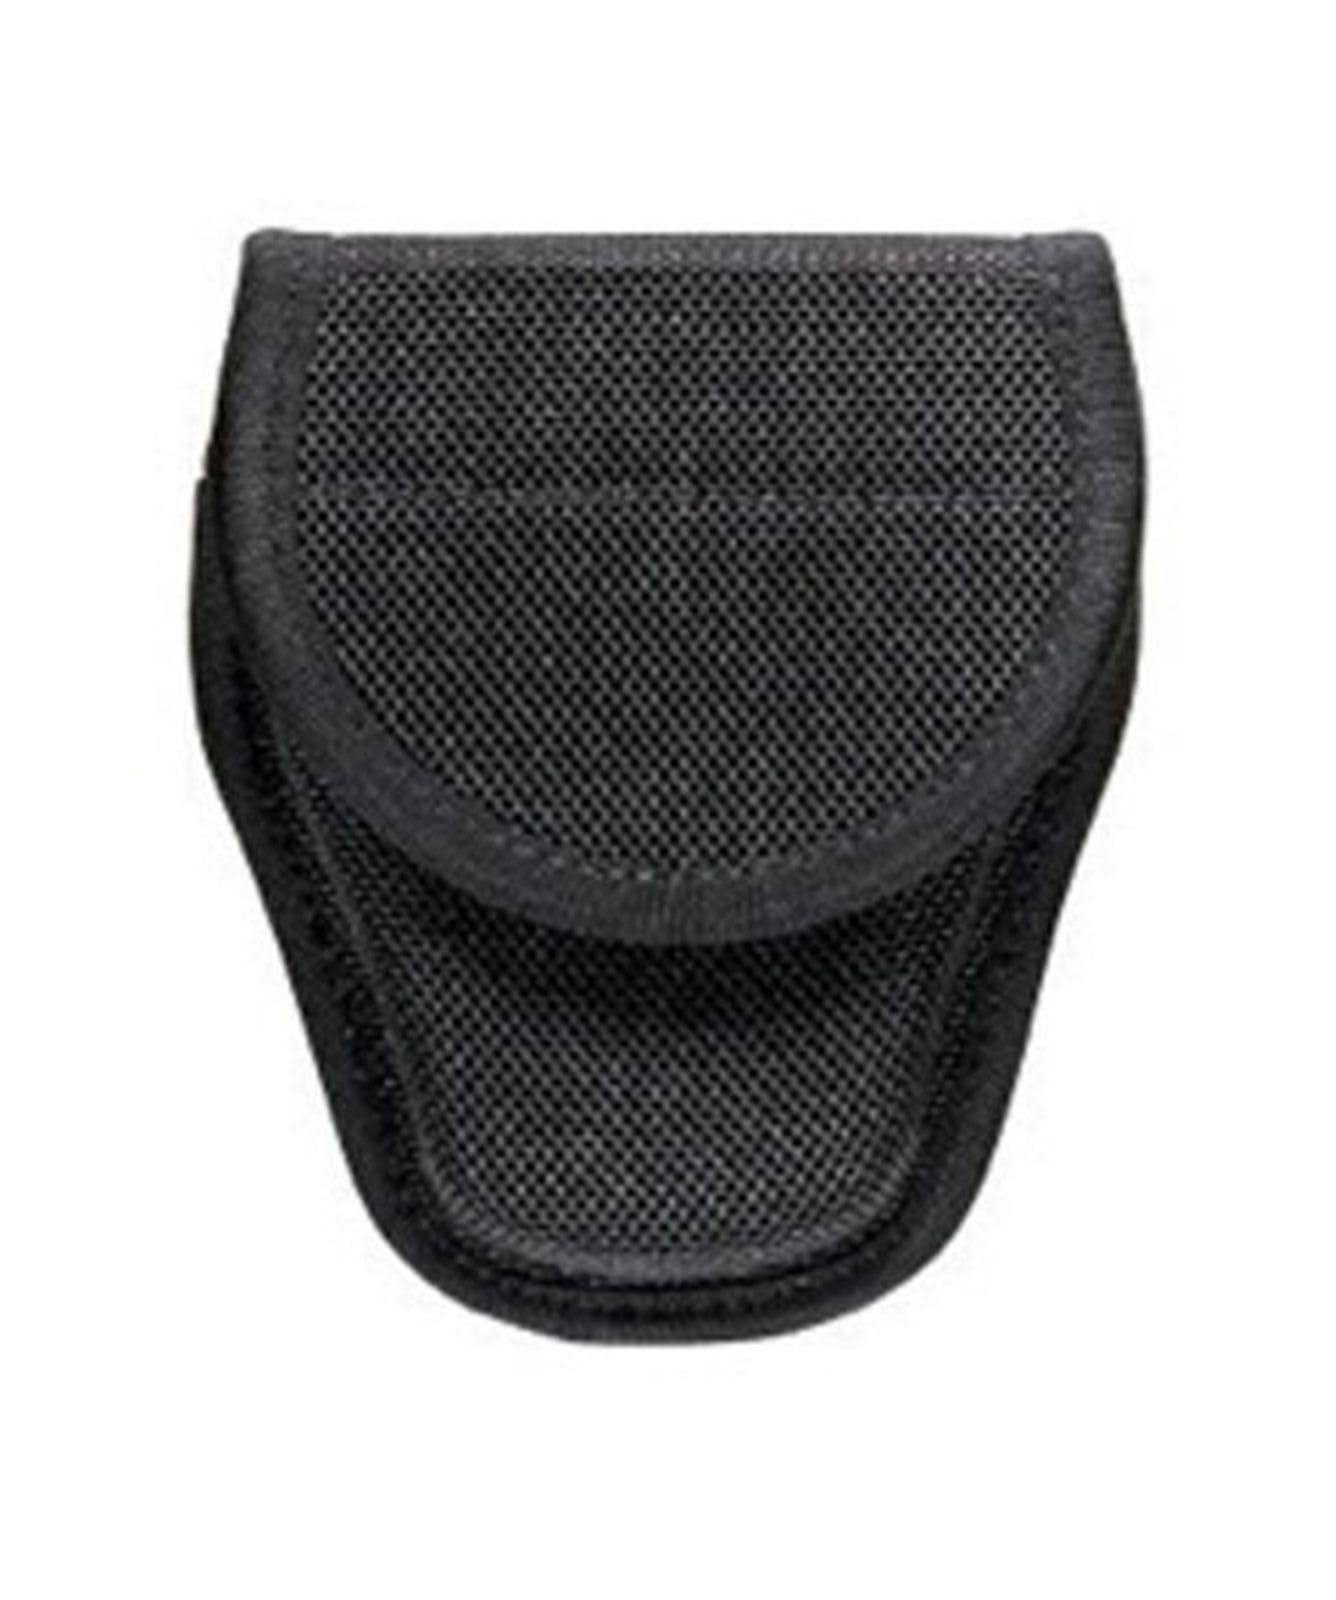 Bianchi AccuMold 7300 Covered Black Handcuff Case